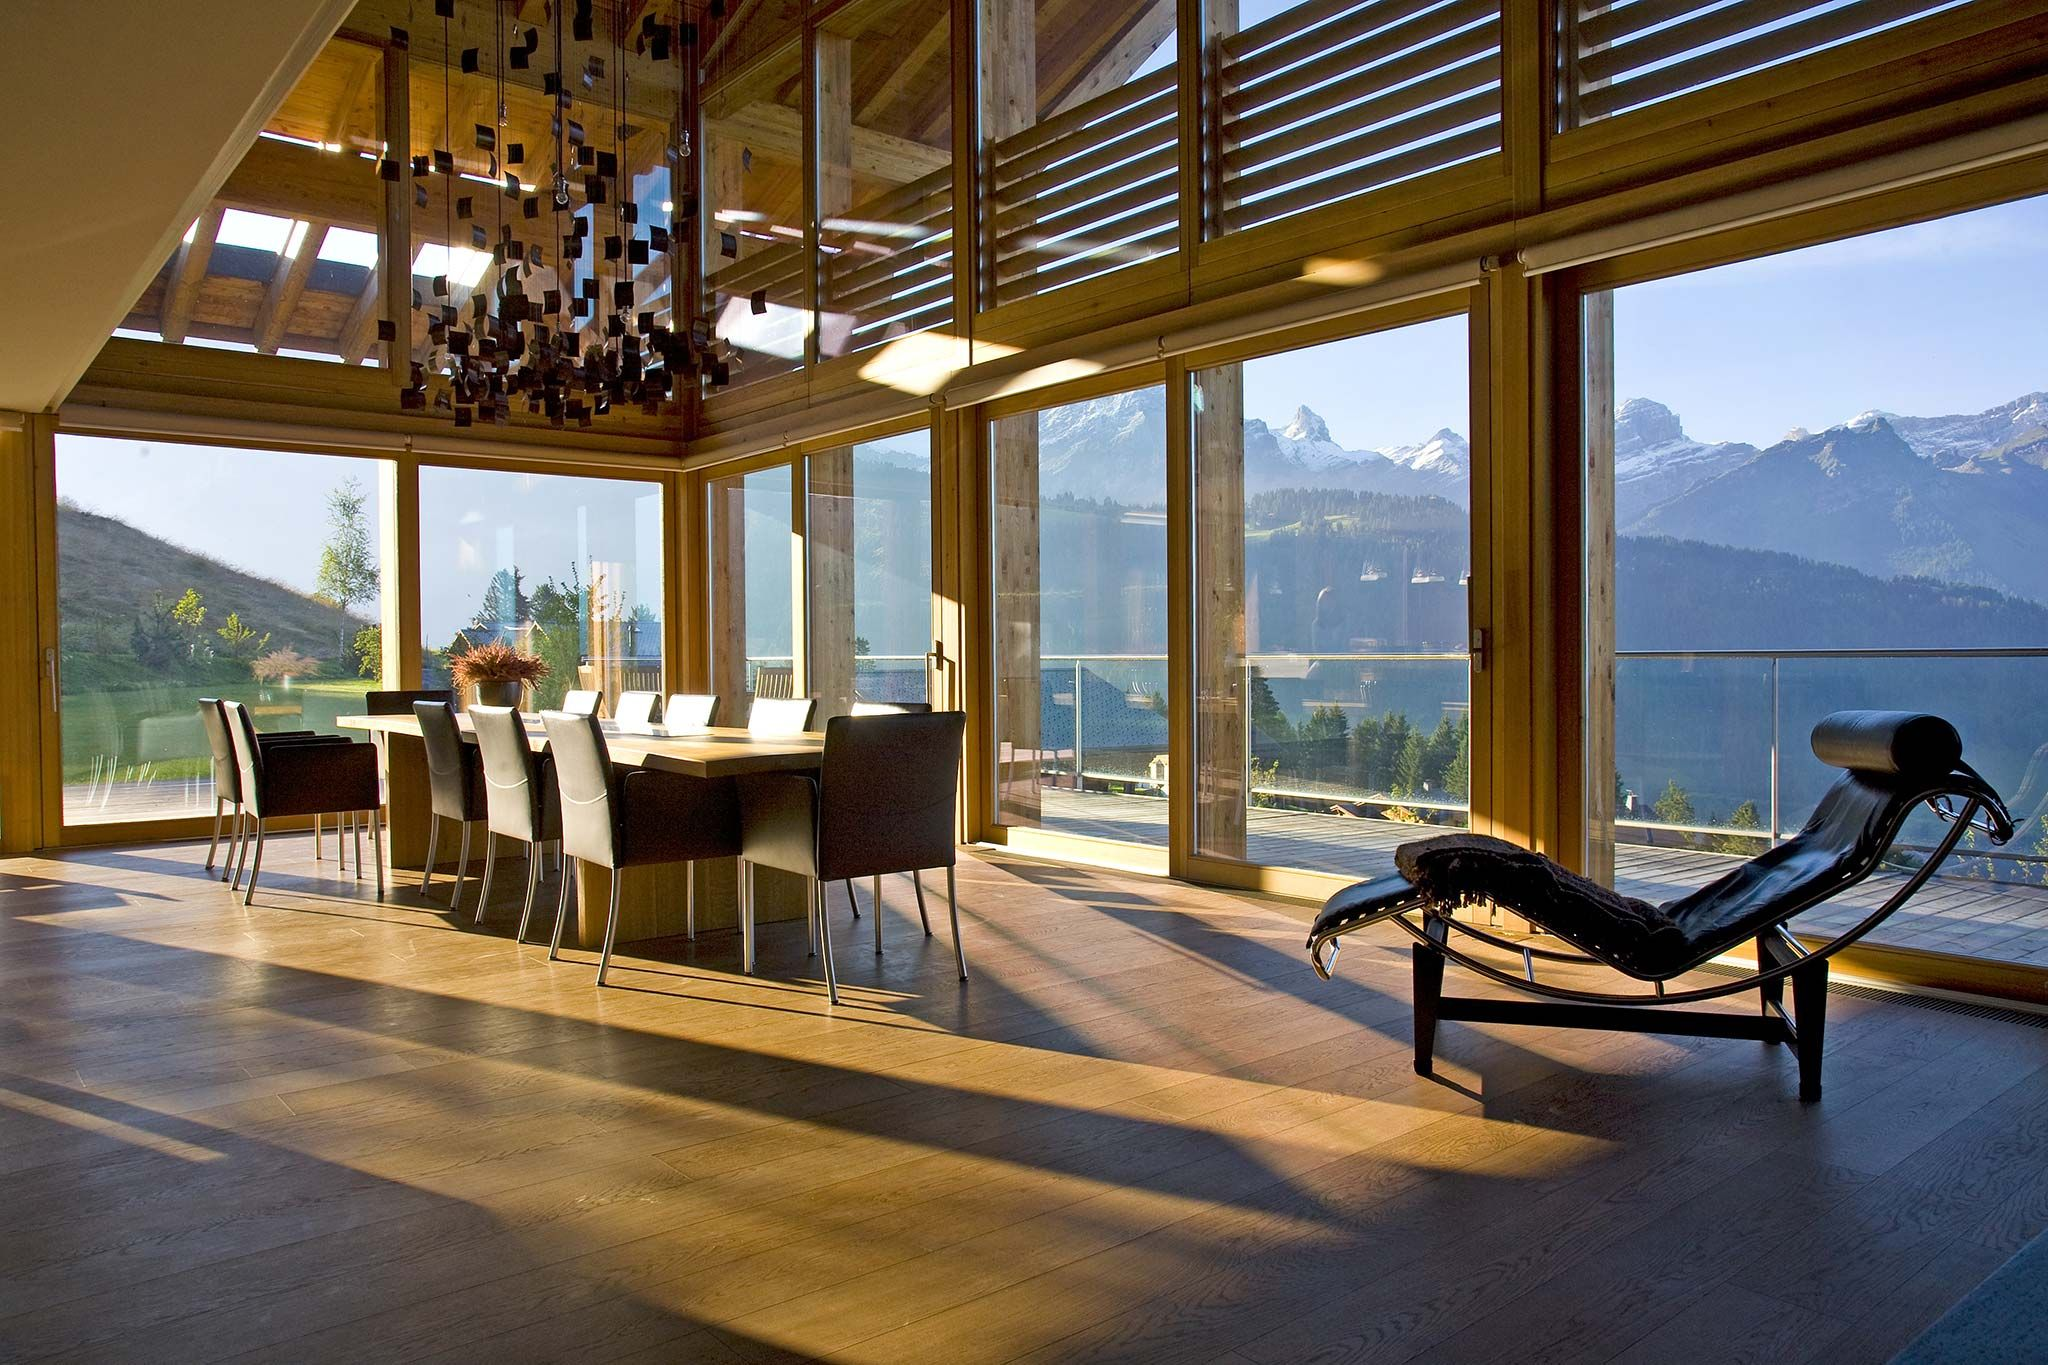 Luxury Interior Styling For Ski Chalet By Callender Howorth | the ...